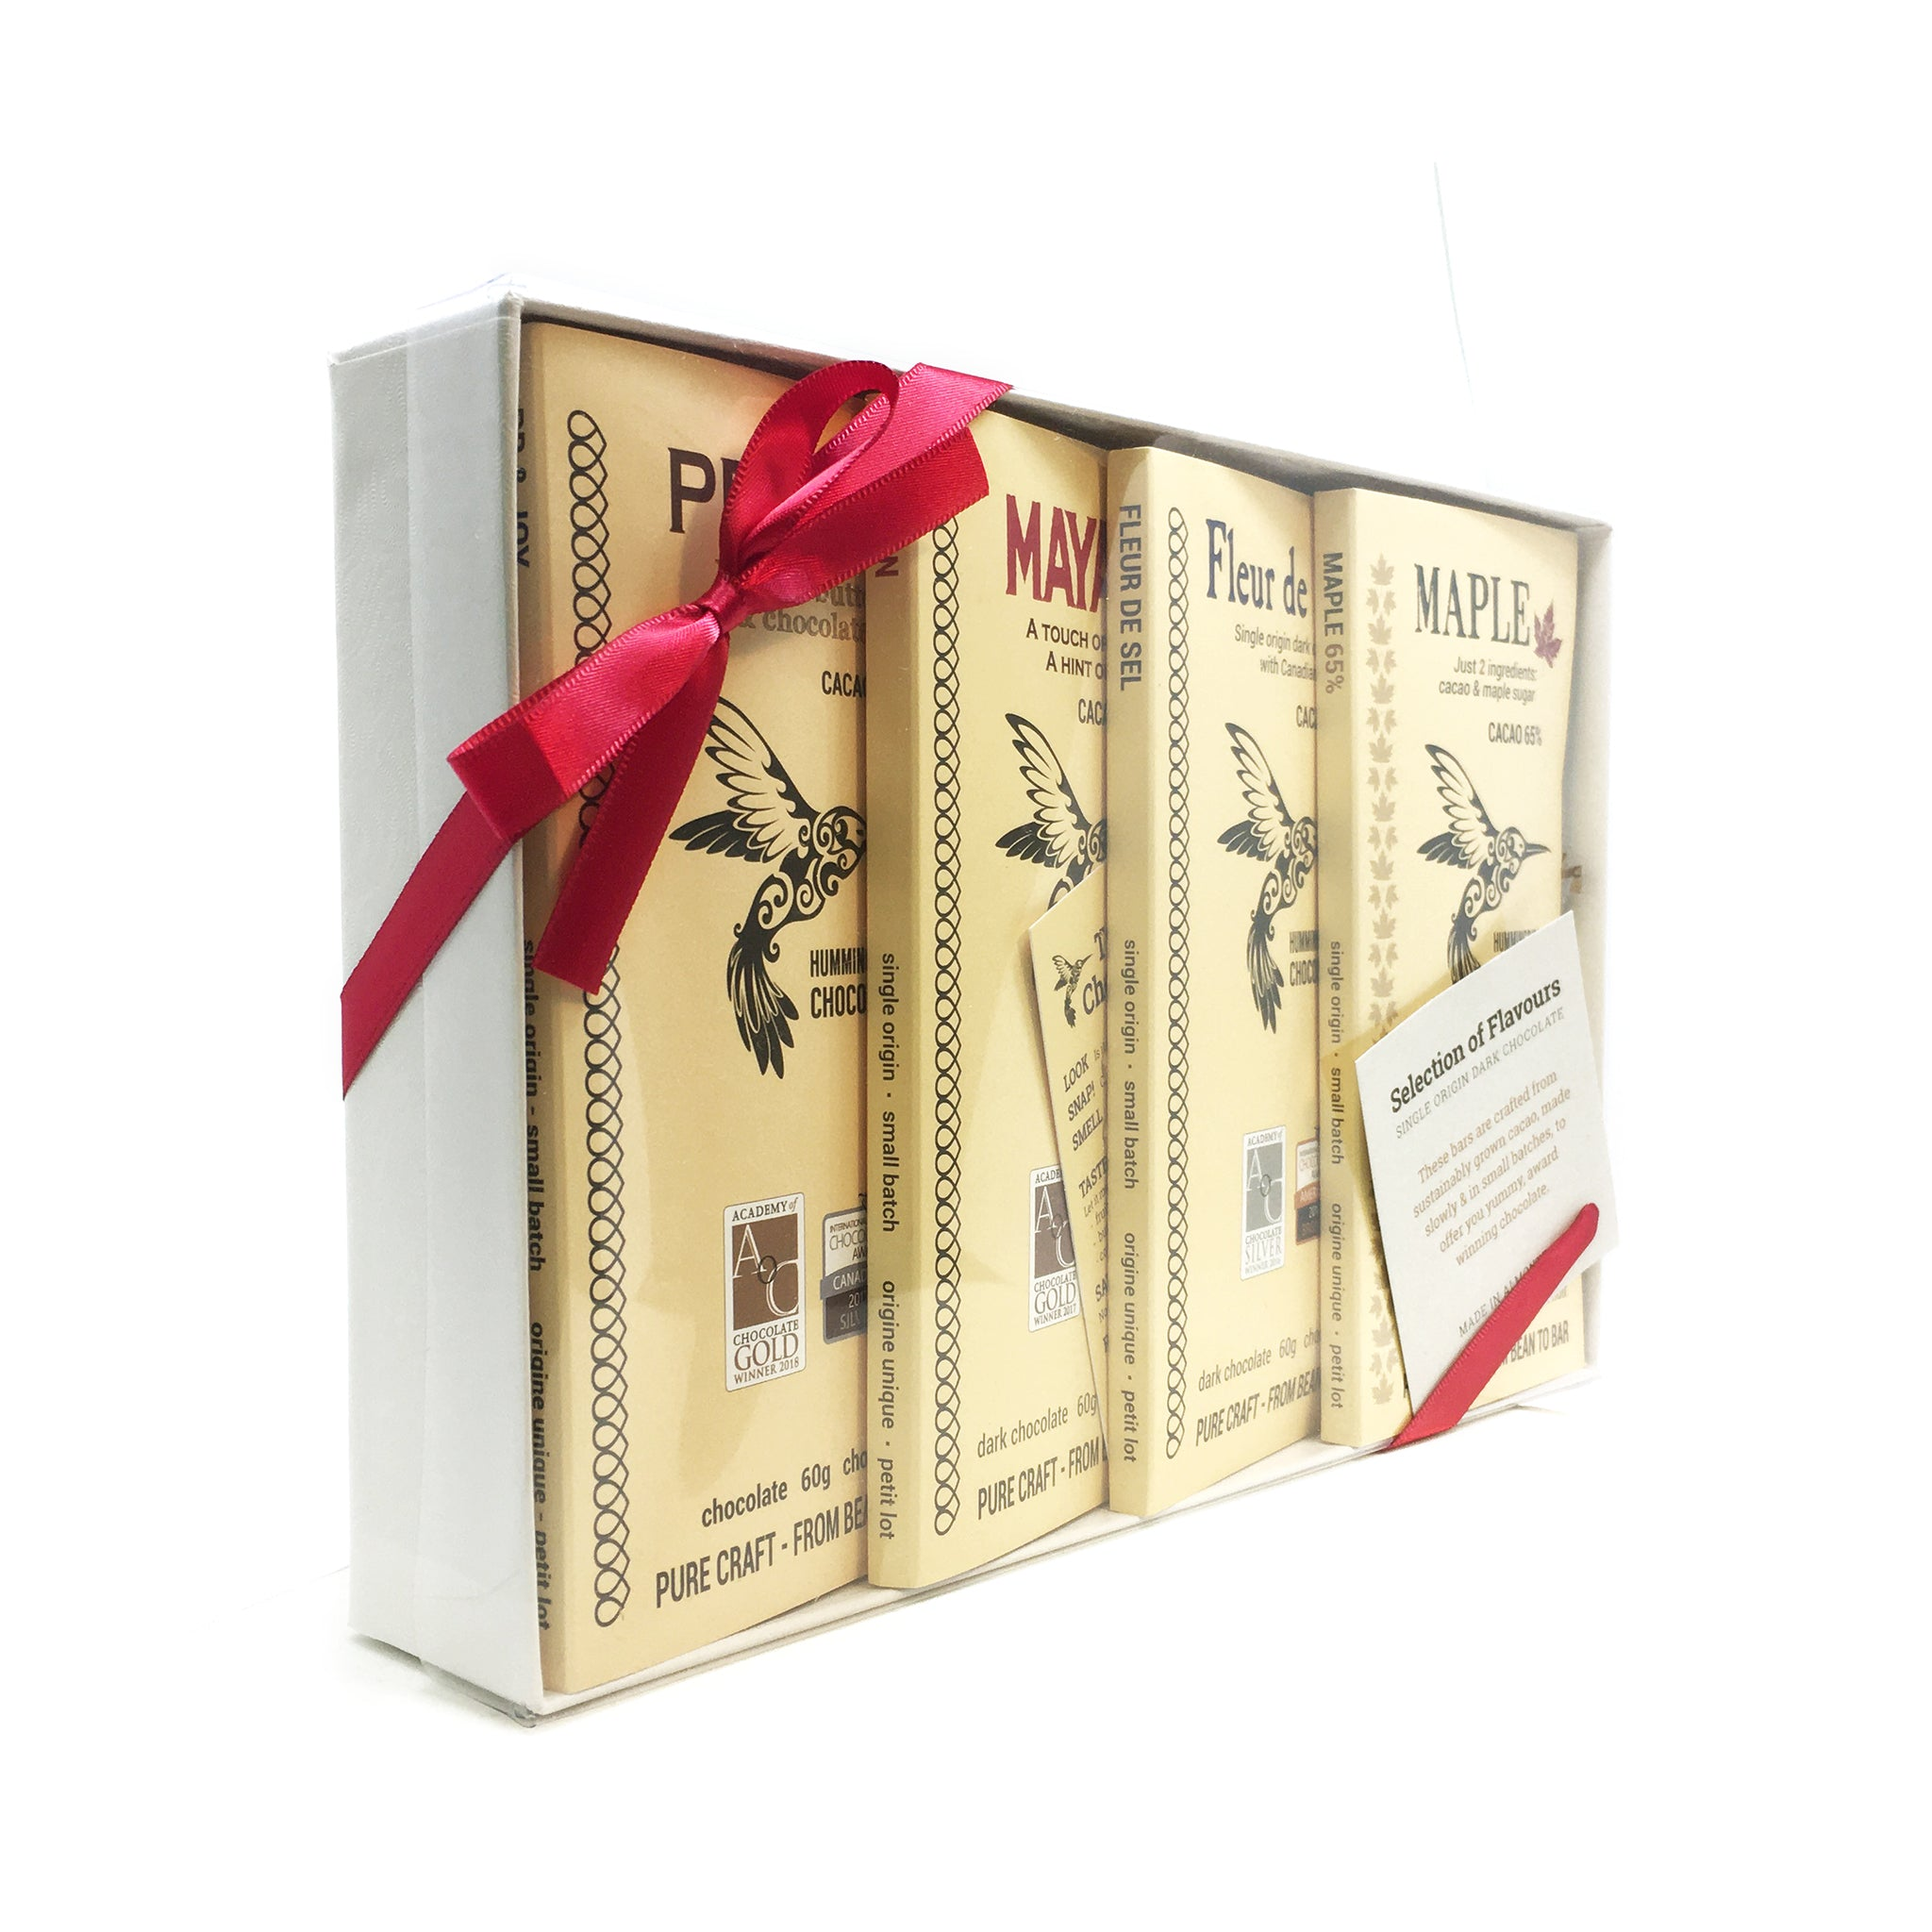 Hummingbird Chocolate, Selection of Flavours Gift Box - angled view.